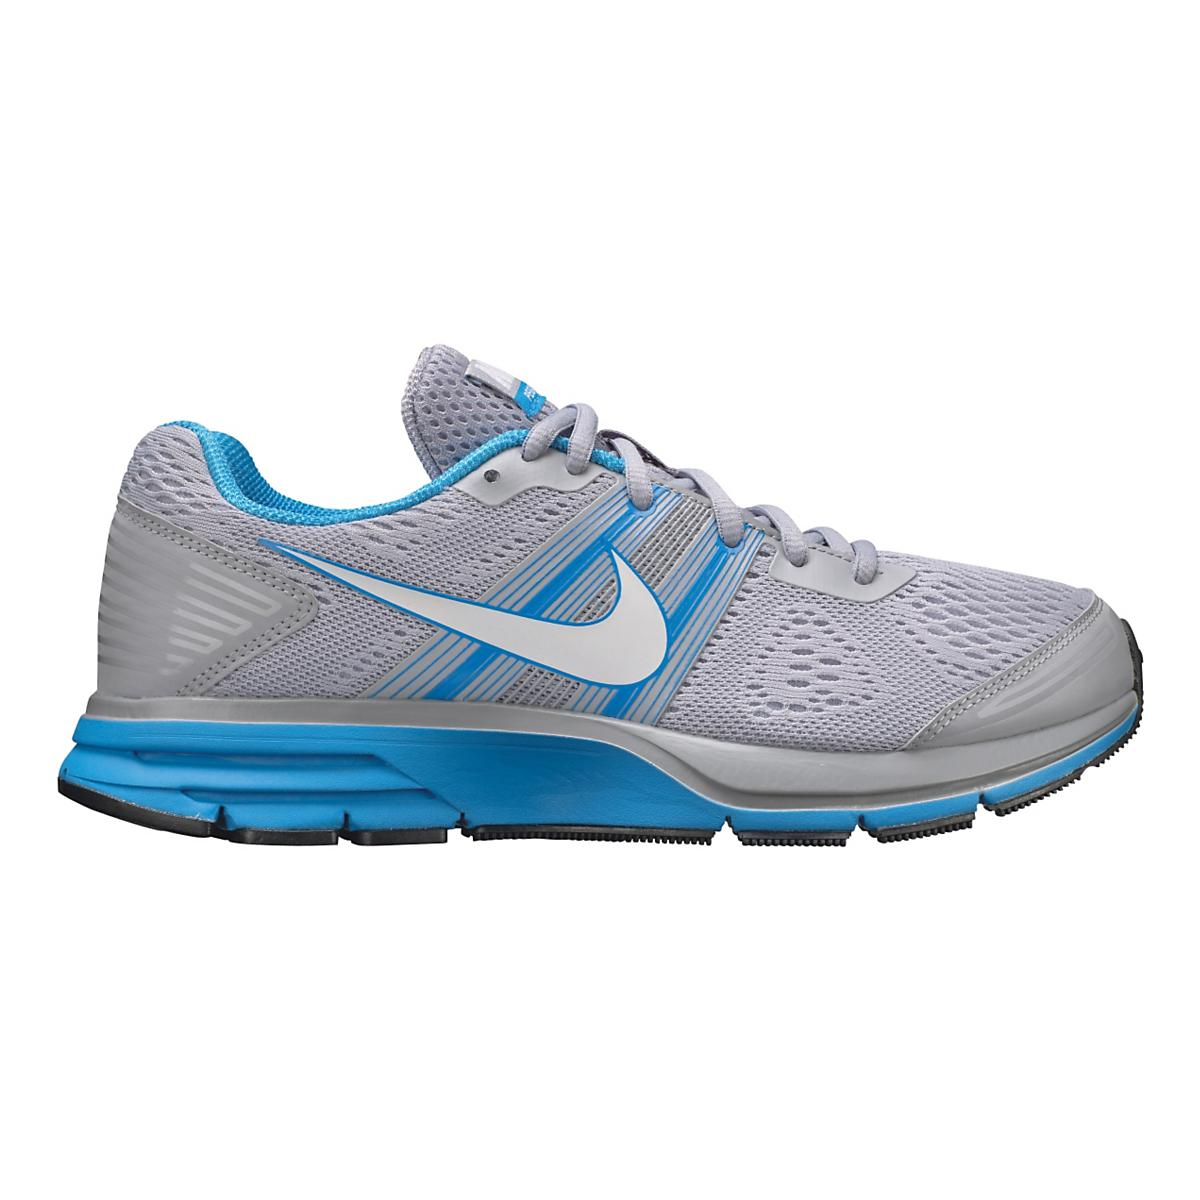 38fdfe3f99c Womens Nike Air Pegasus+ 29 Running Shoe at Road Runner Sports